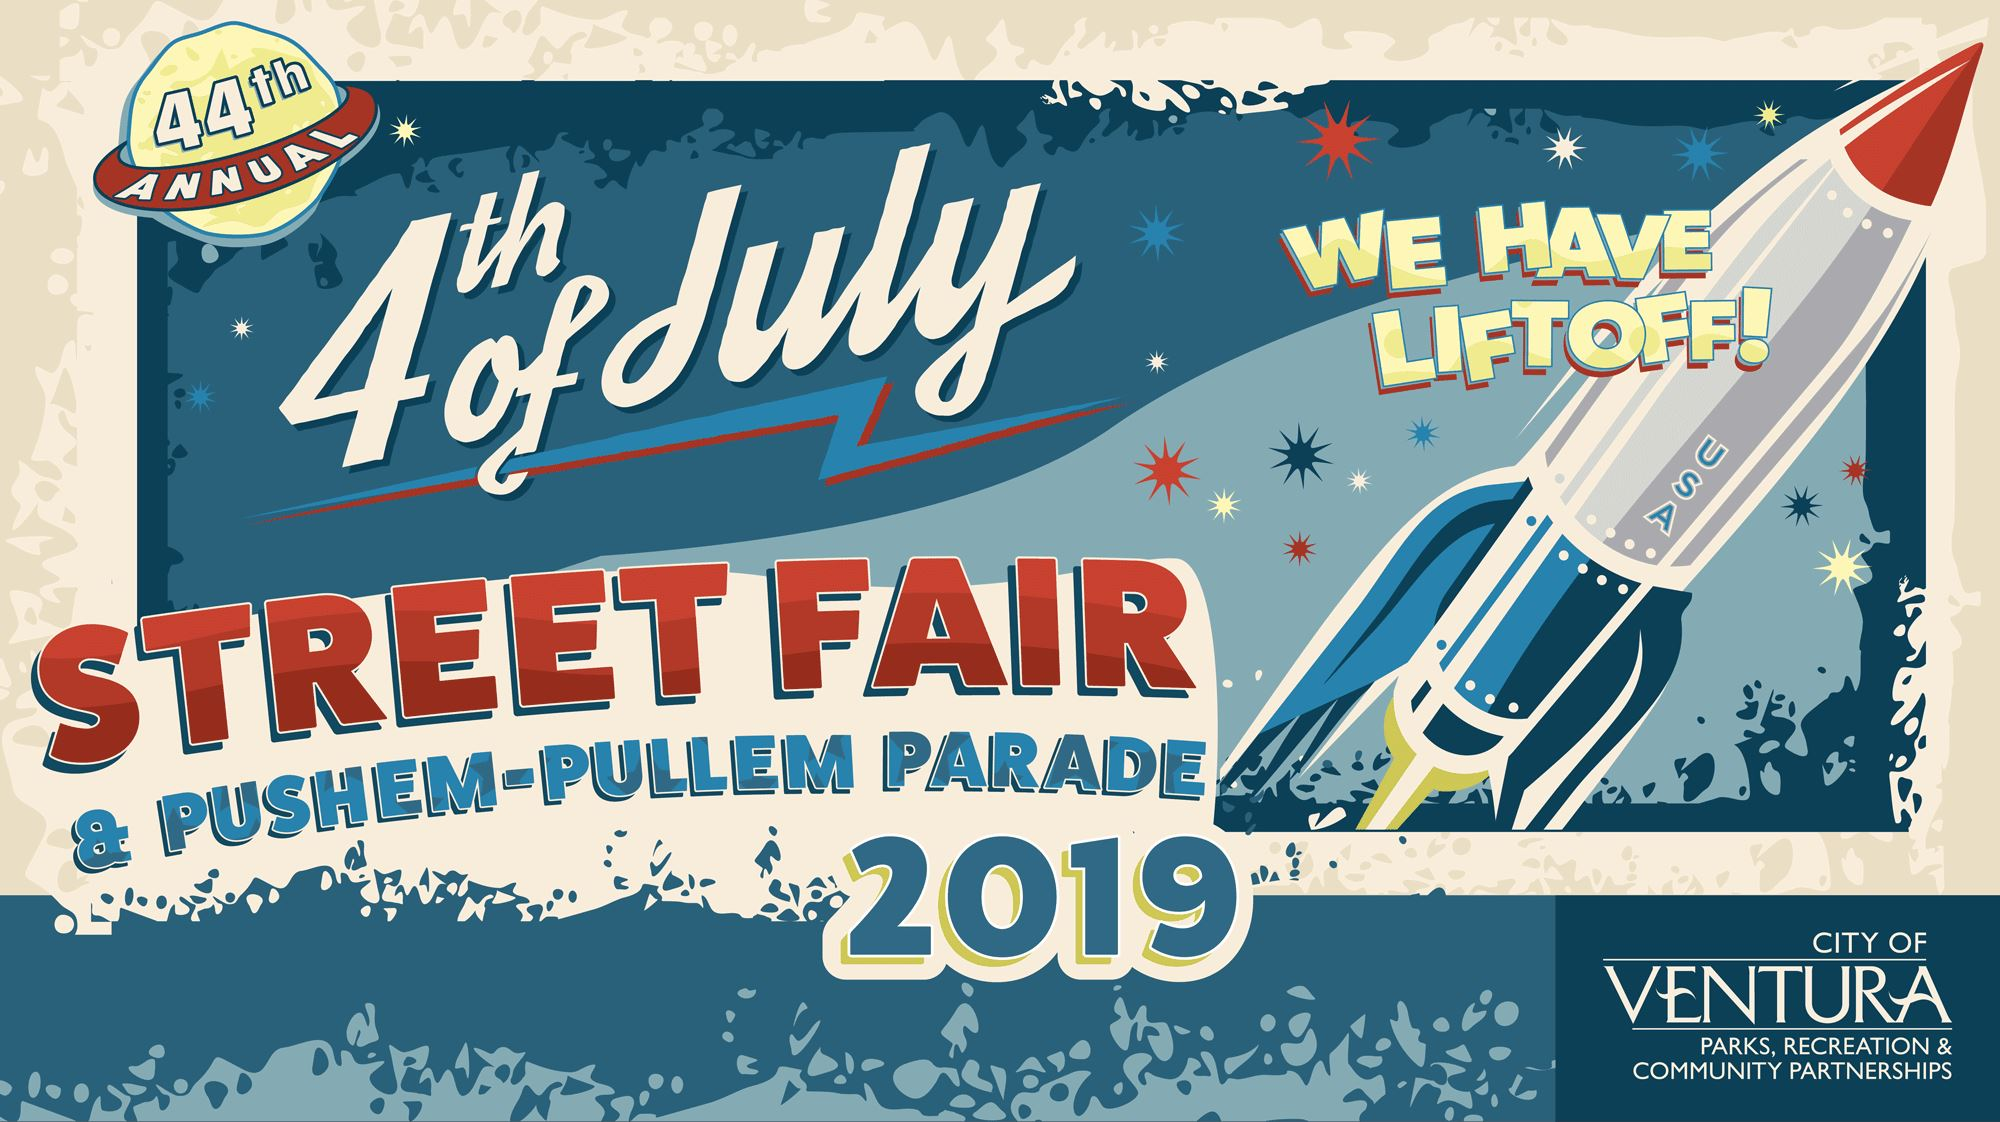 Ventura's 4th of July Street Fair & Pushem-Pullem Parade